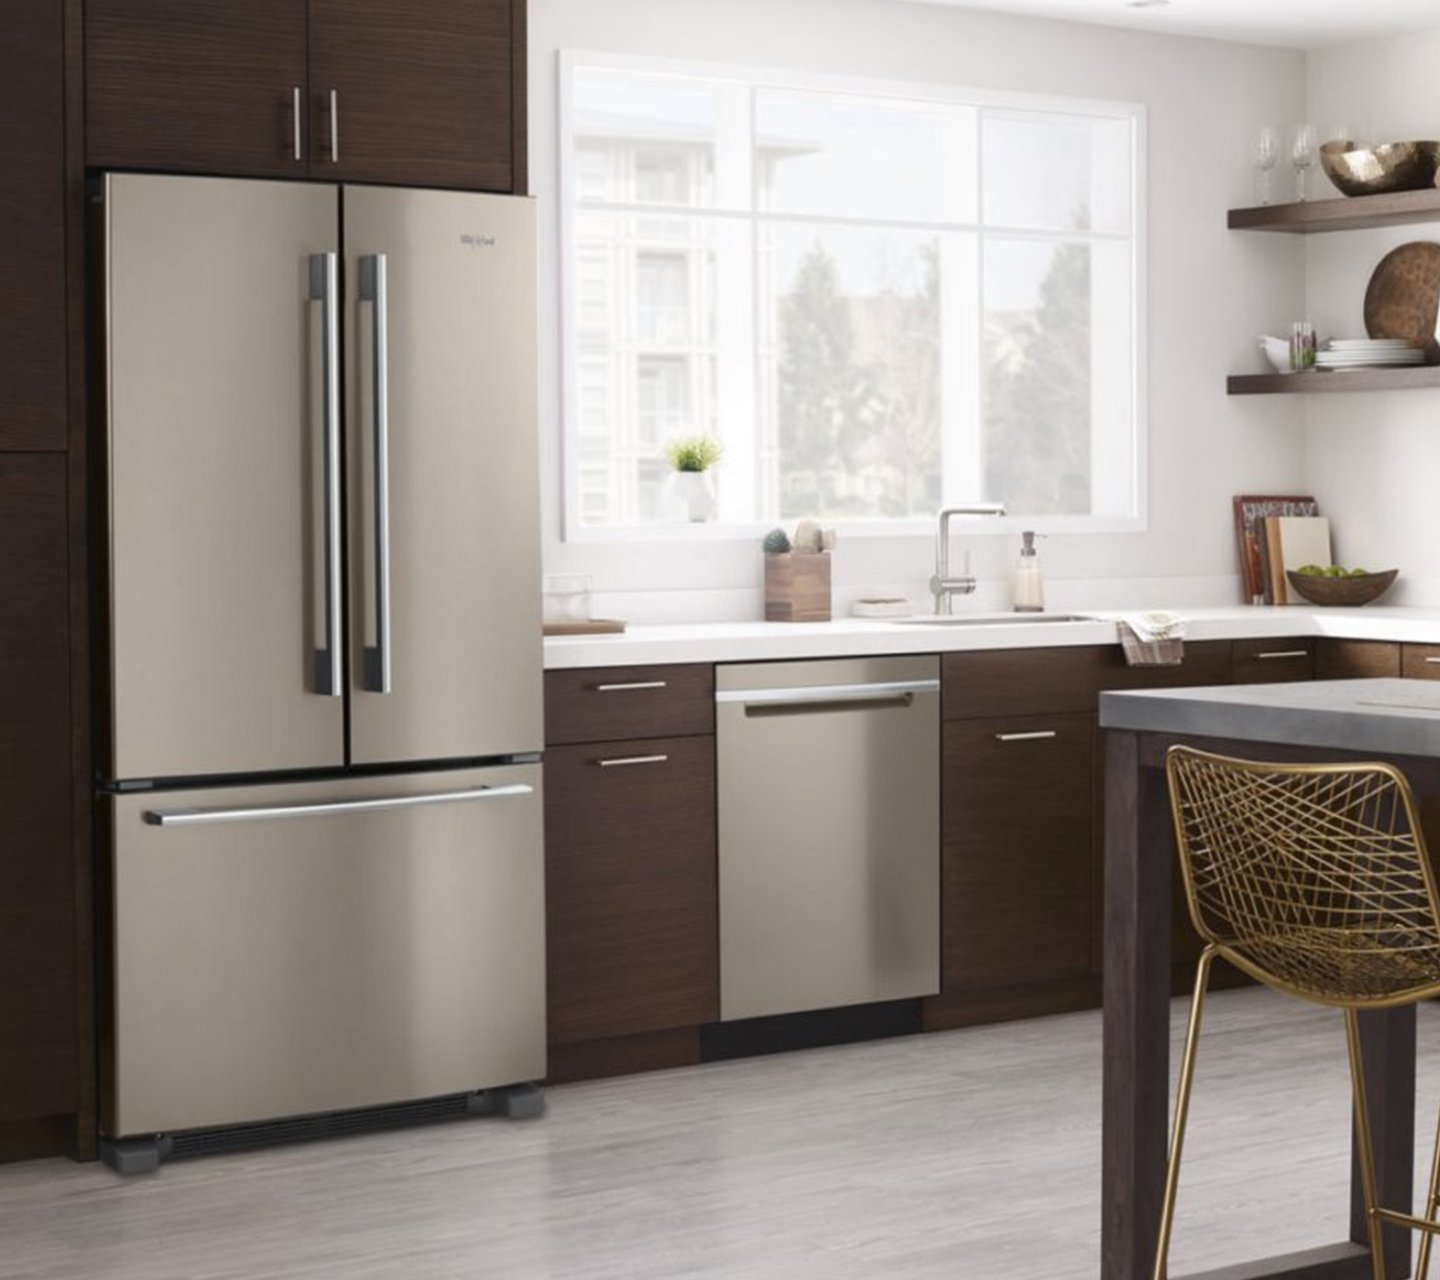 Kitchen with Whirlpool appliances